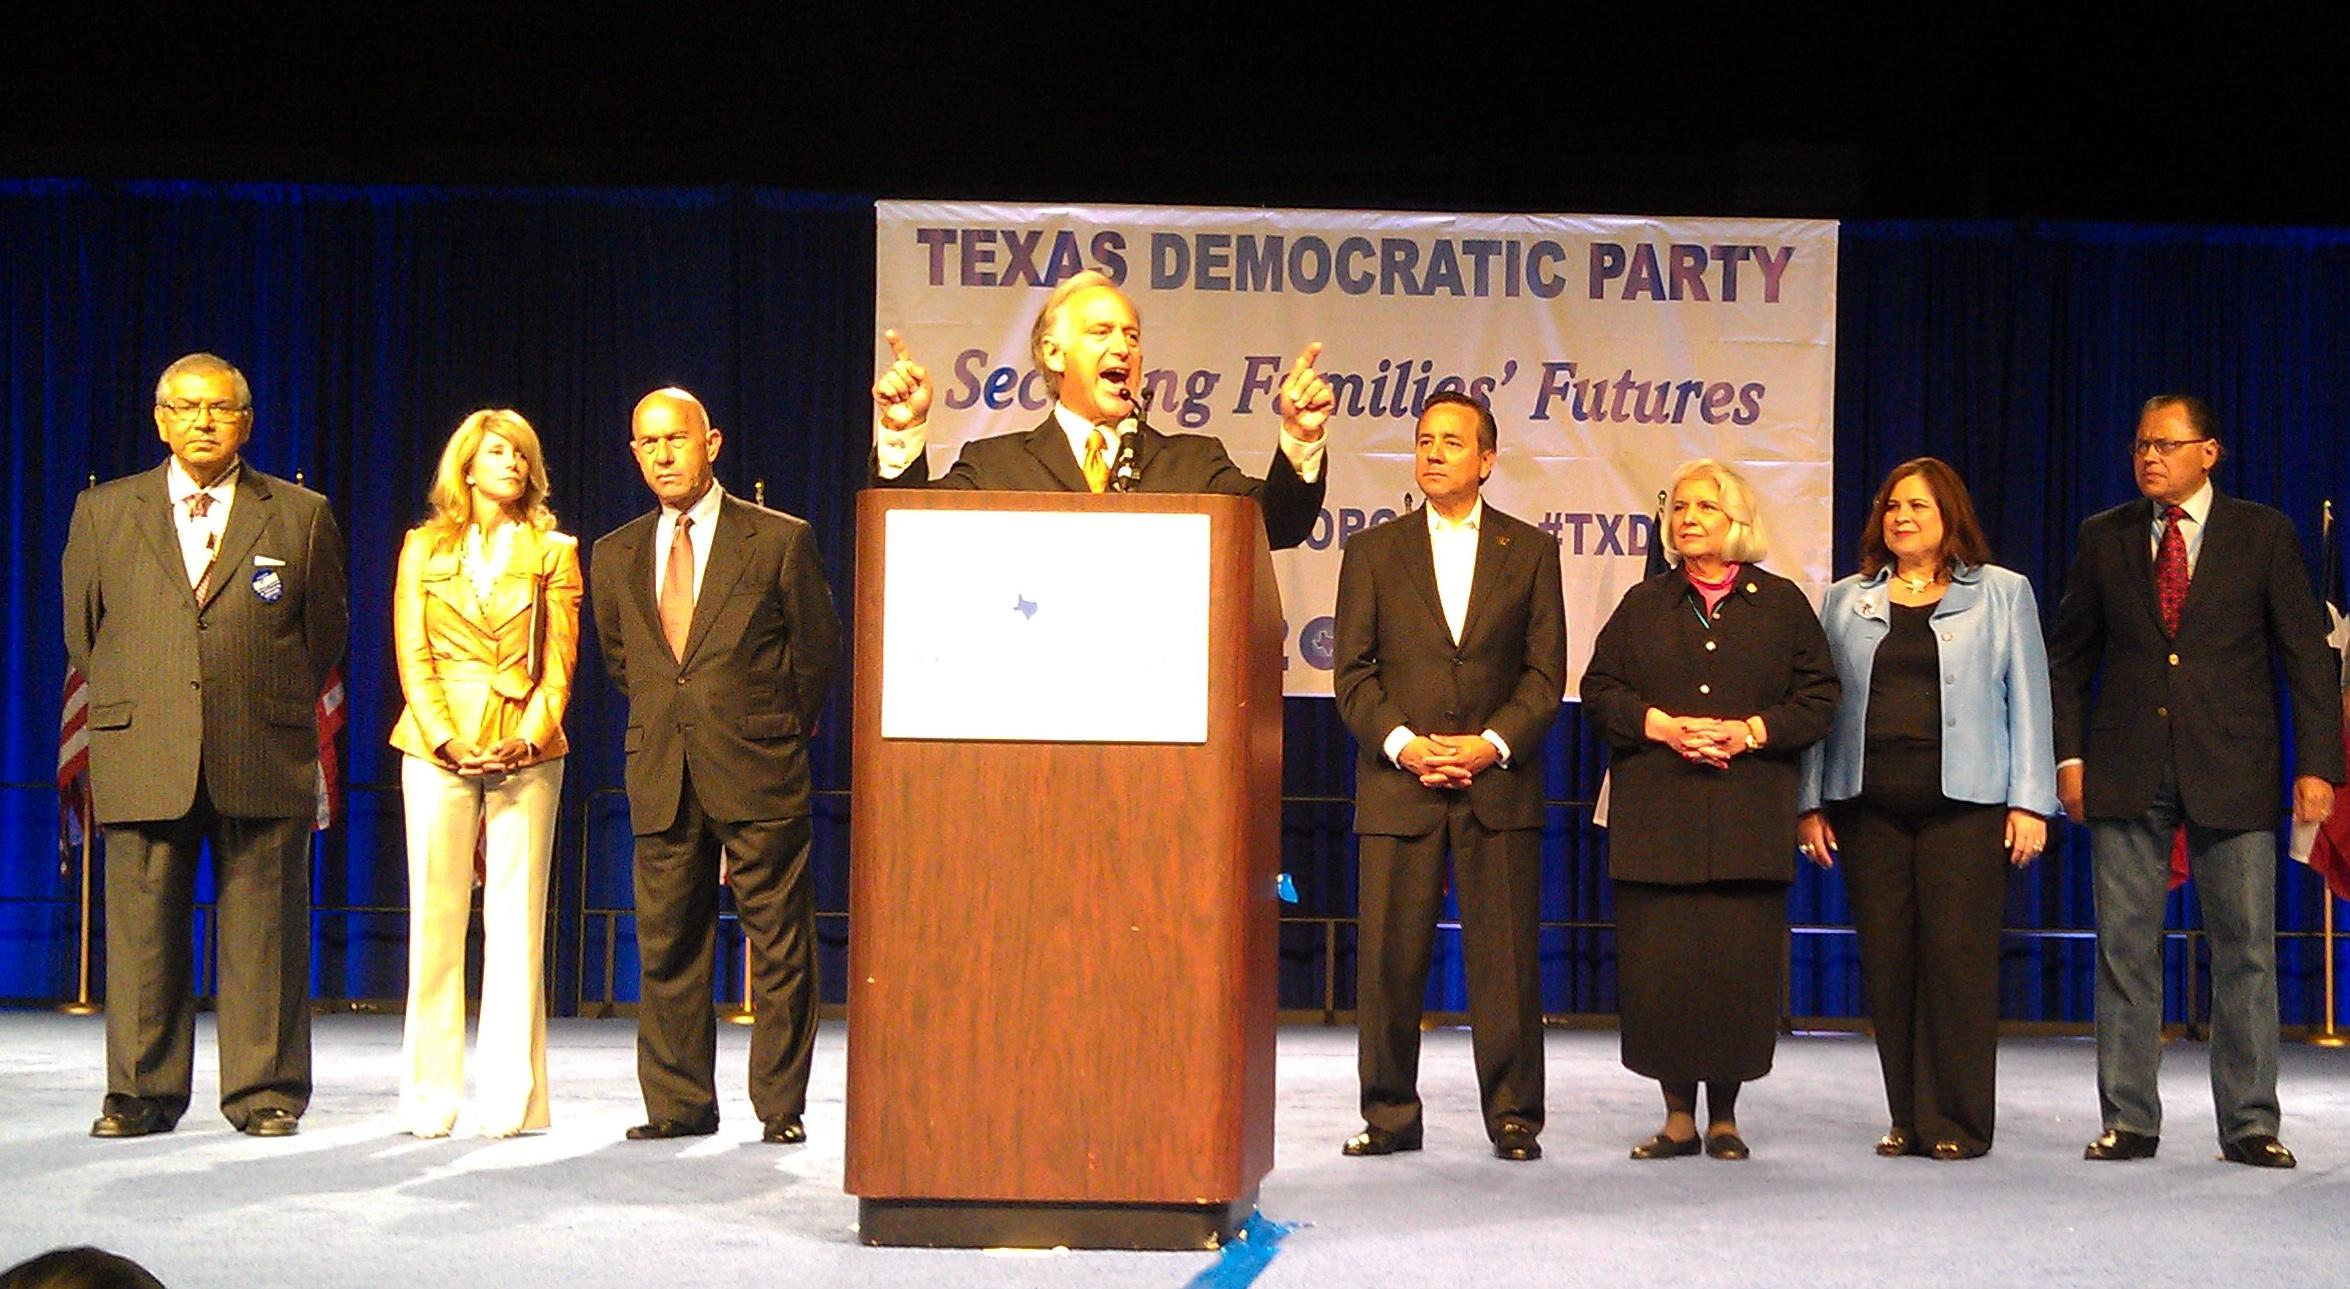 Texas Democratic Party Convention Speech